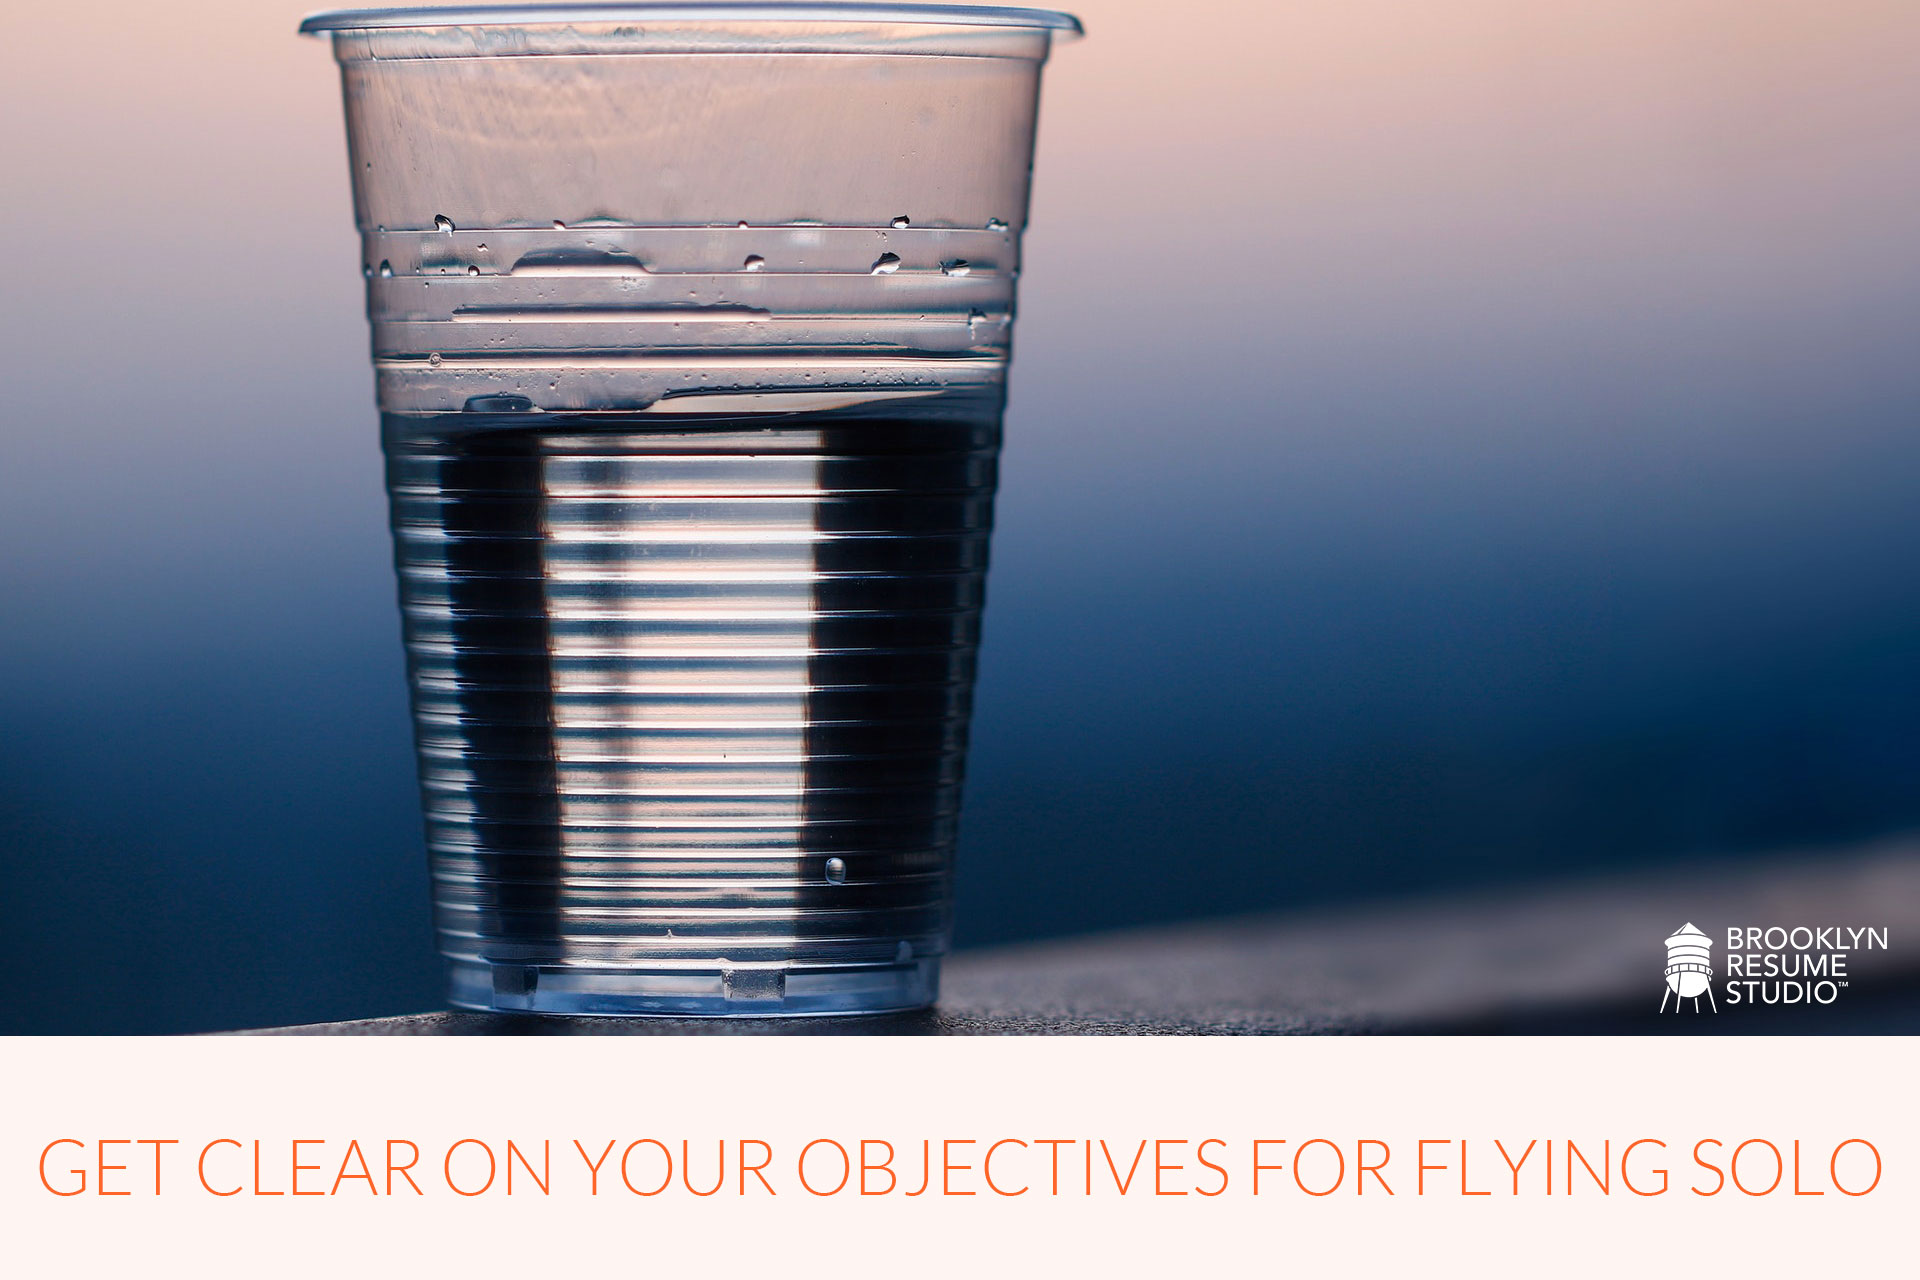 Freelance Smart: Get Clear on Your Objectives for Flying Solo